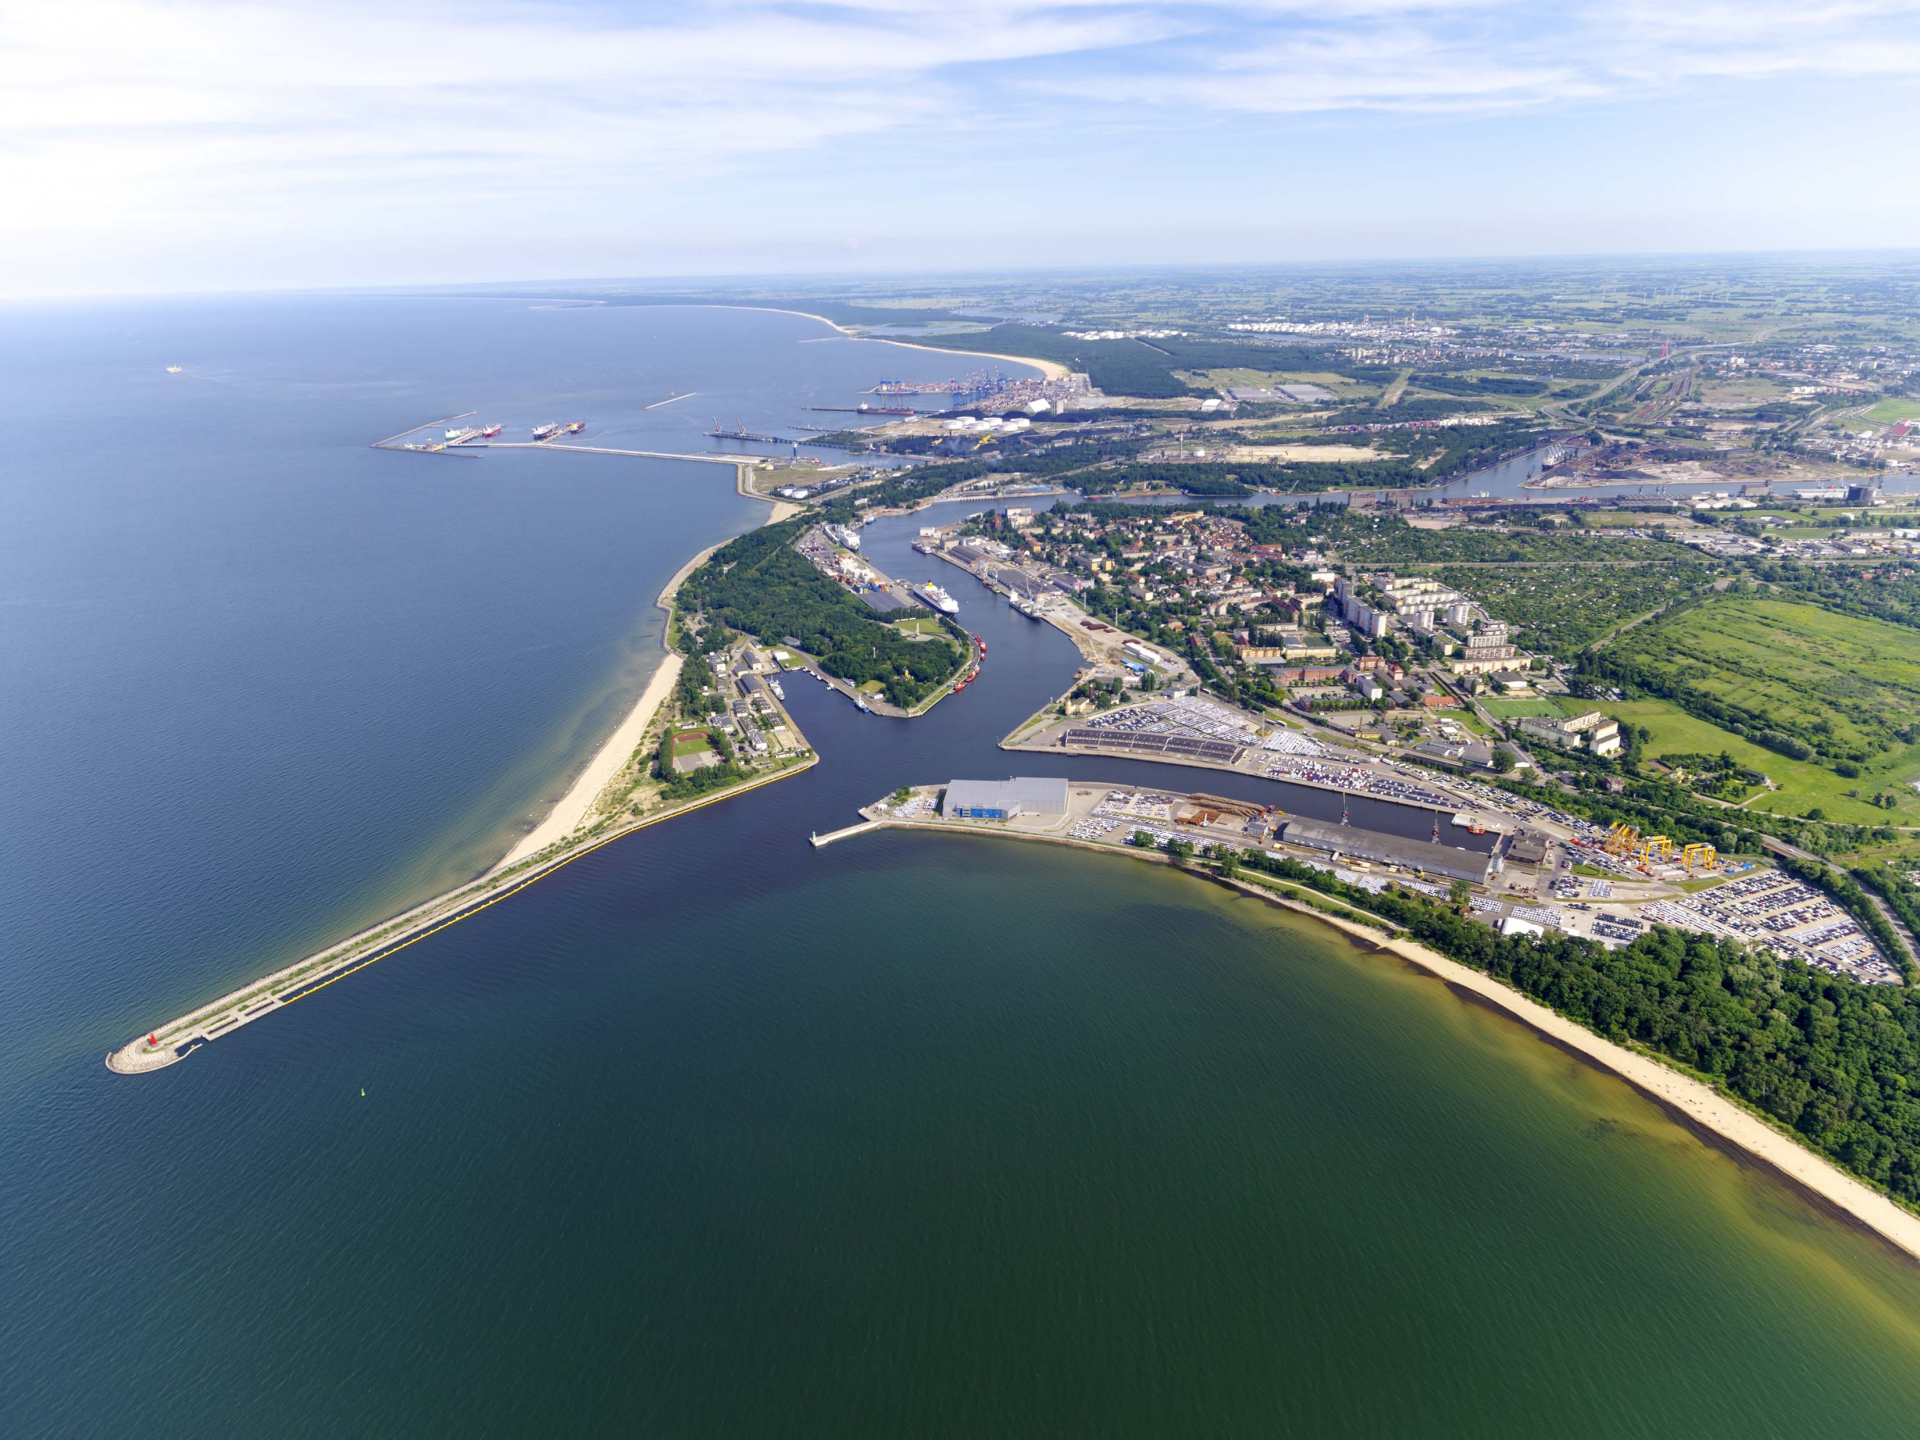 The Port of Gdansk is becoming one of the leading European ports